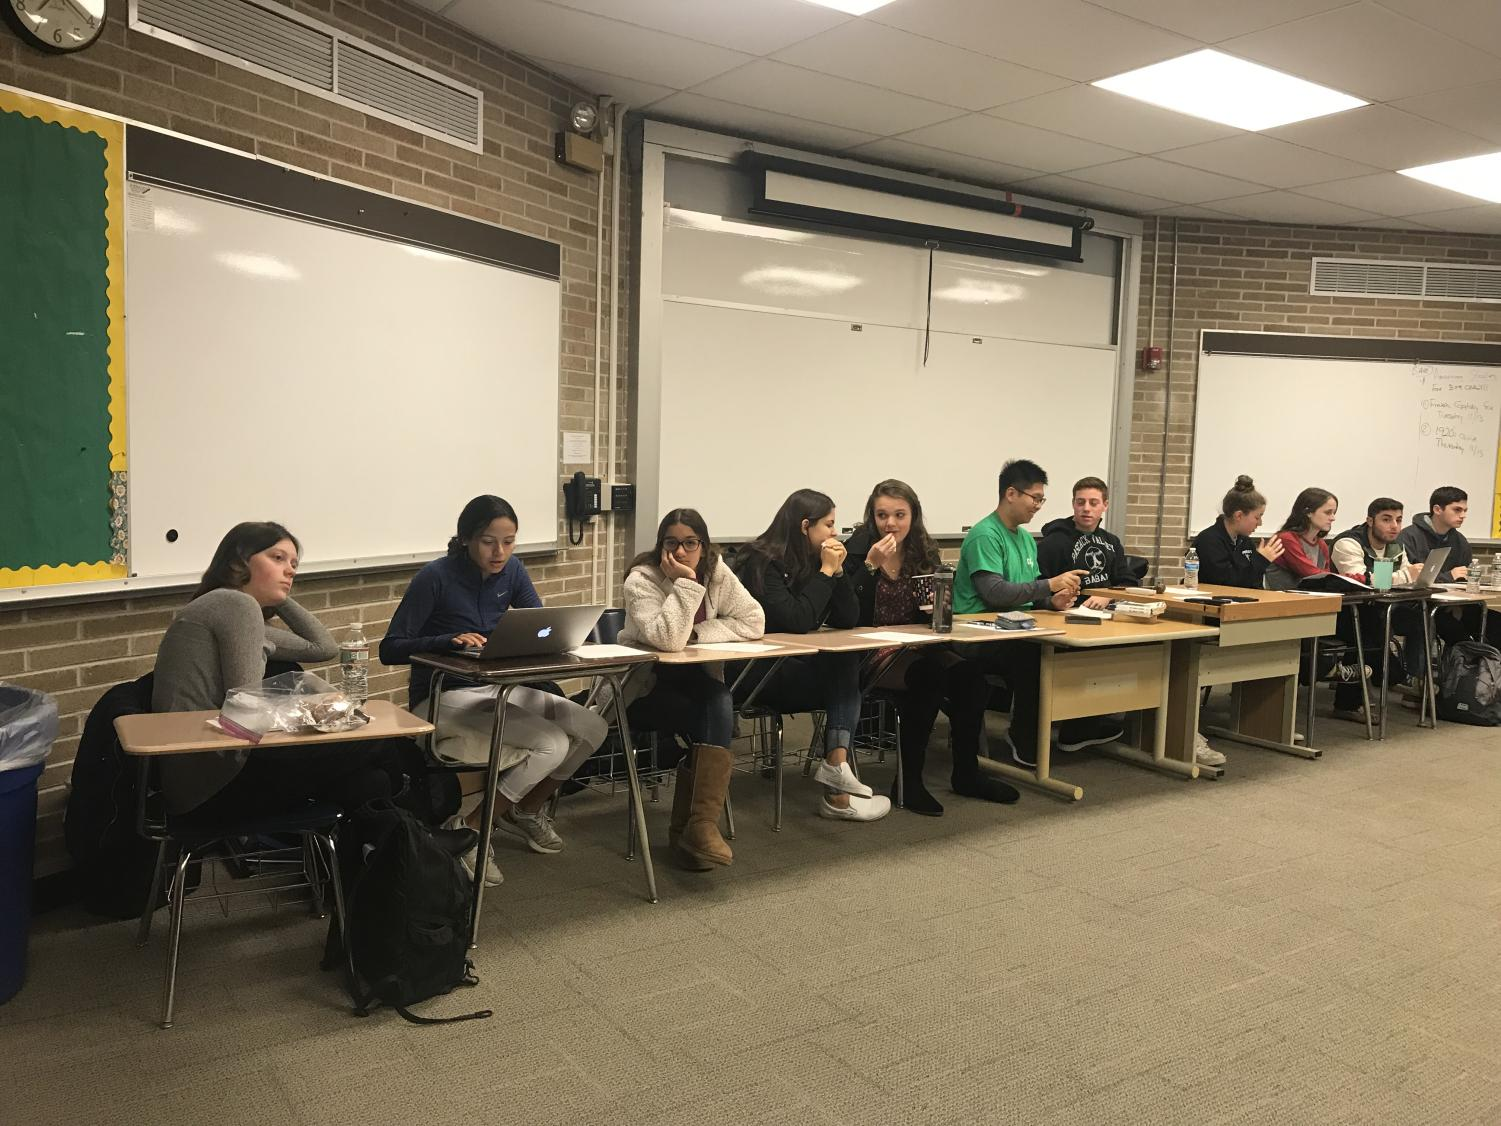 PV Student Council members held a meeting for students and faculty to discuss what actions can be taken against anti-Semitism in the school.